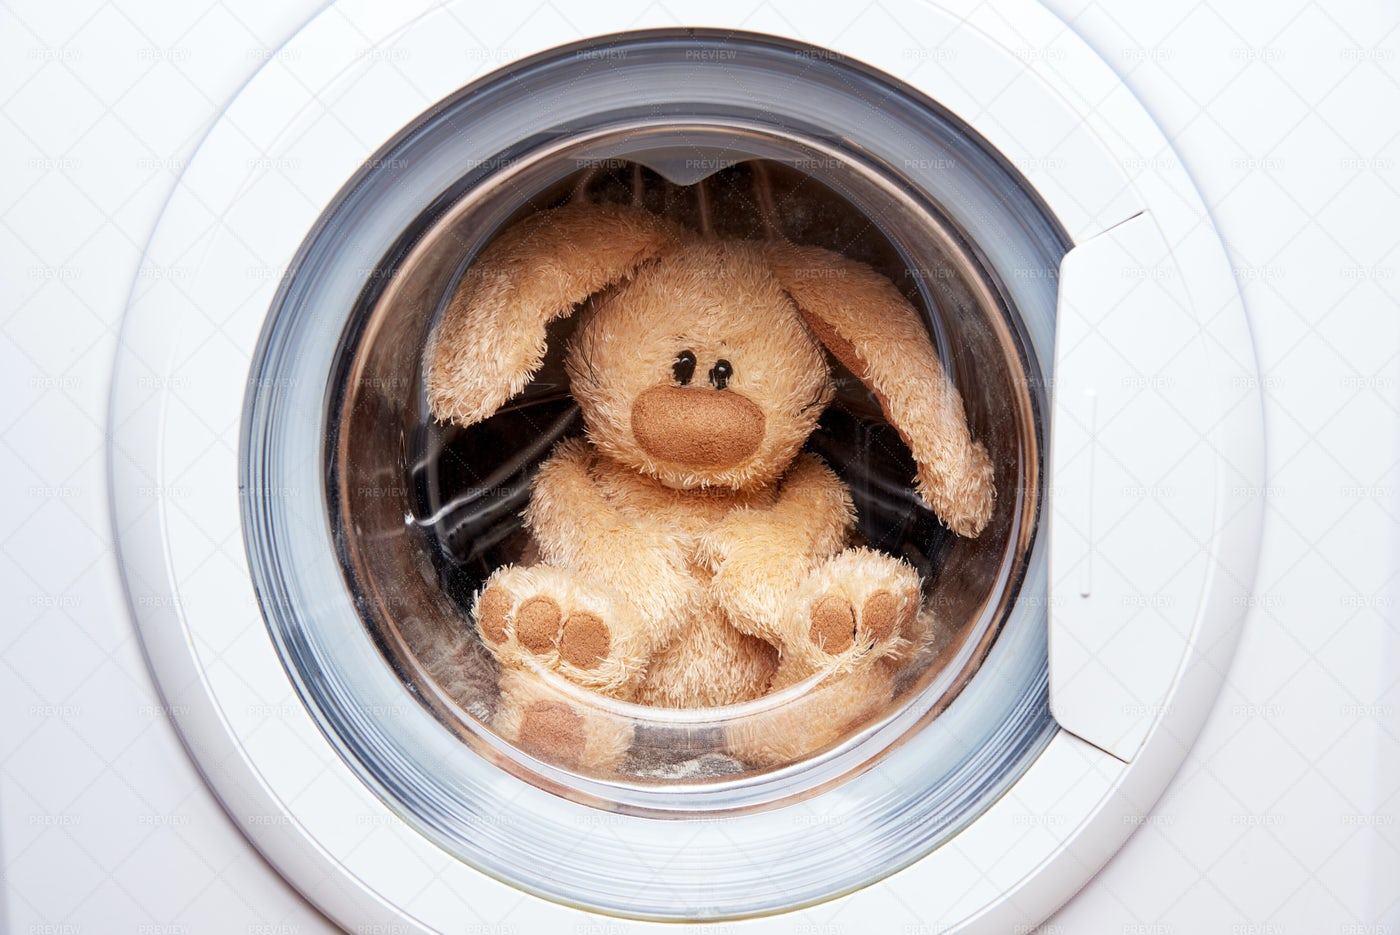 Rabbit Toy In The Laundry.: Stock Photos